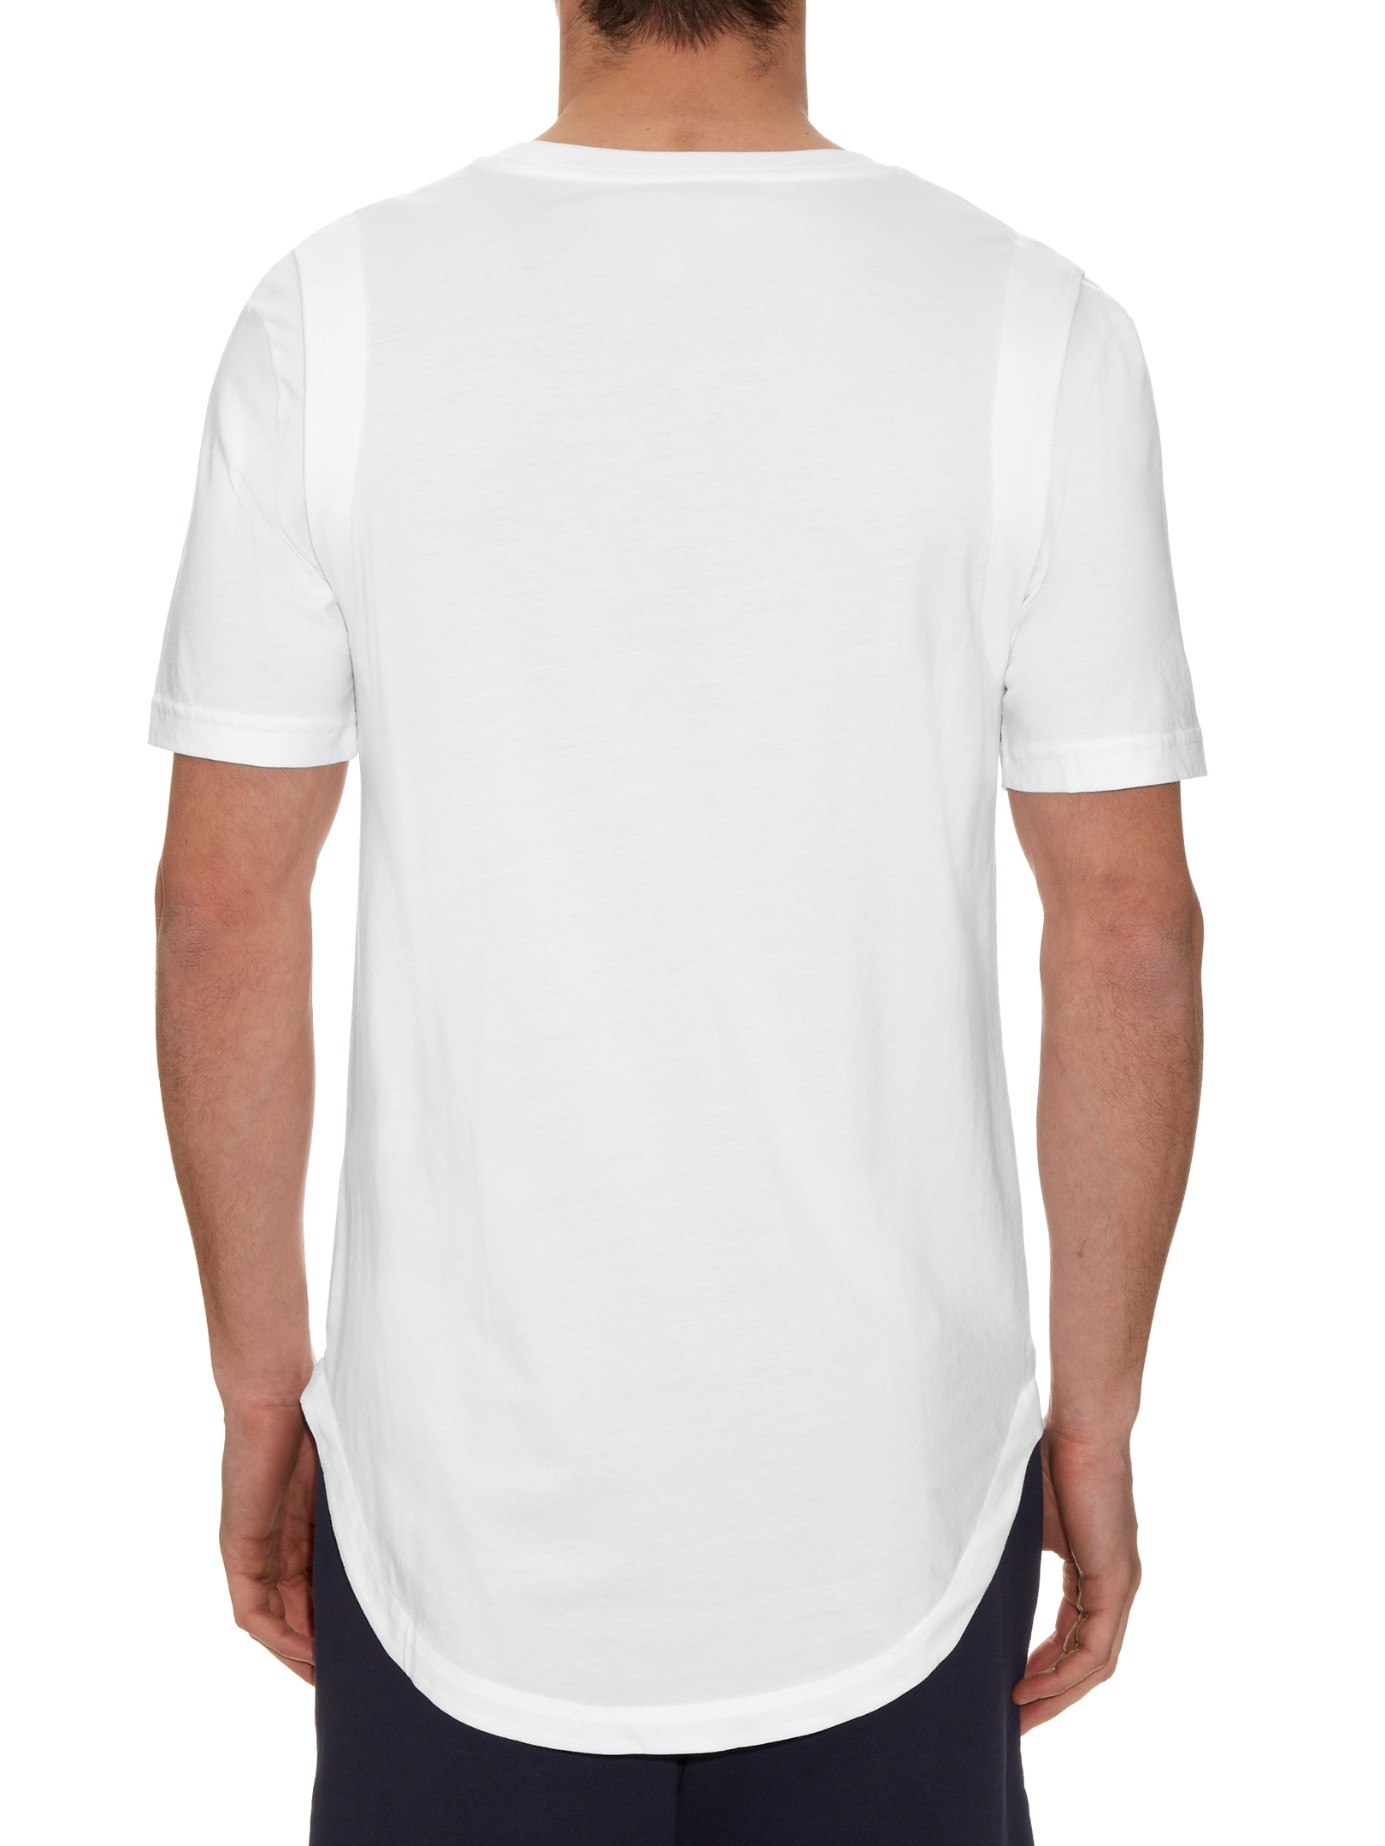 Public school moko pima cotton t shirt in white for men lyst for Pima cotton tee shirts